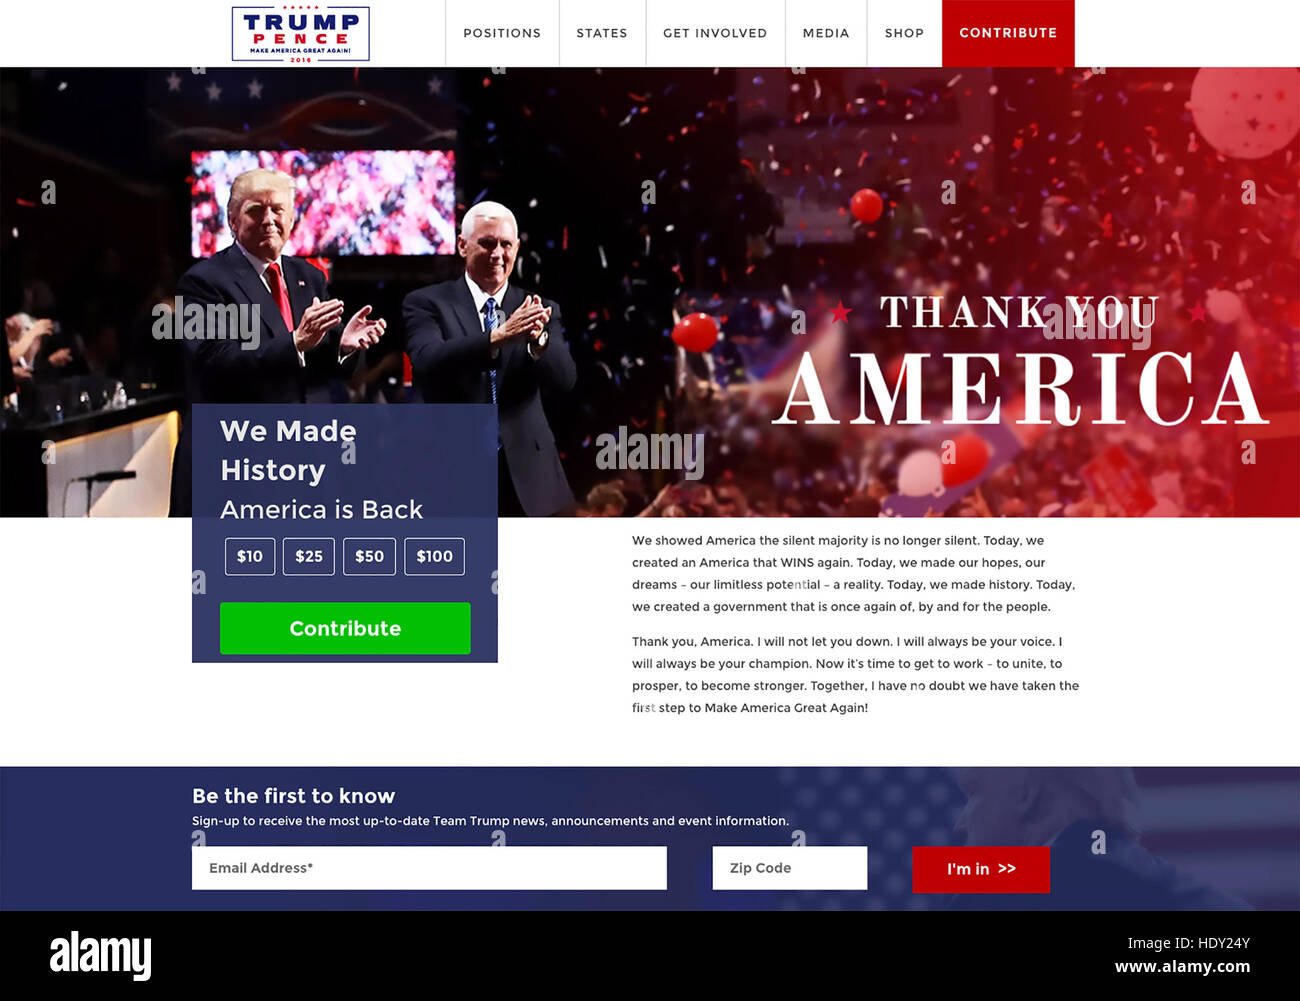 DONALD TRUMP As US President-Elect with Vice President Elect Mike Pence. Web page thanking supporters in December - Stock Image